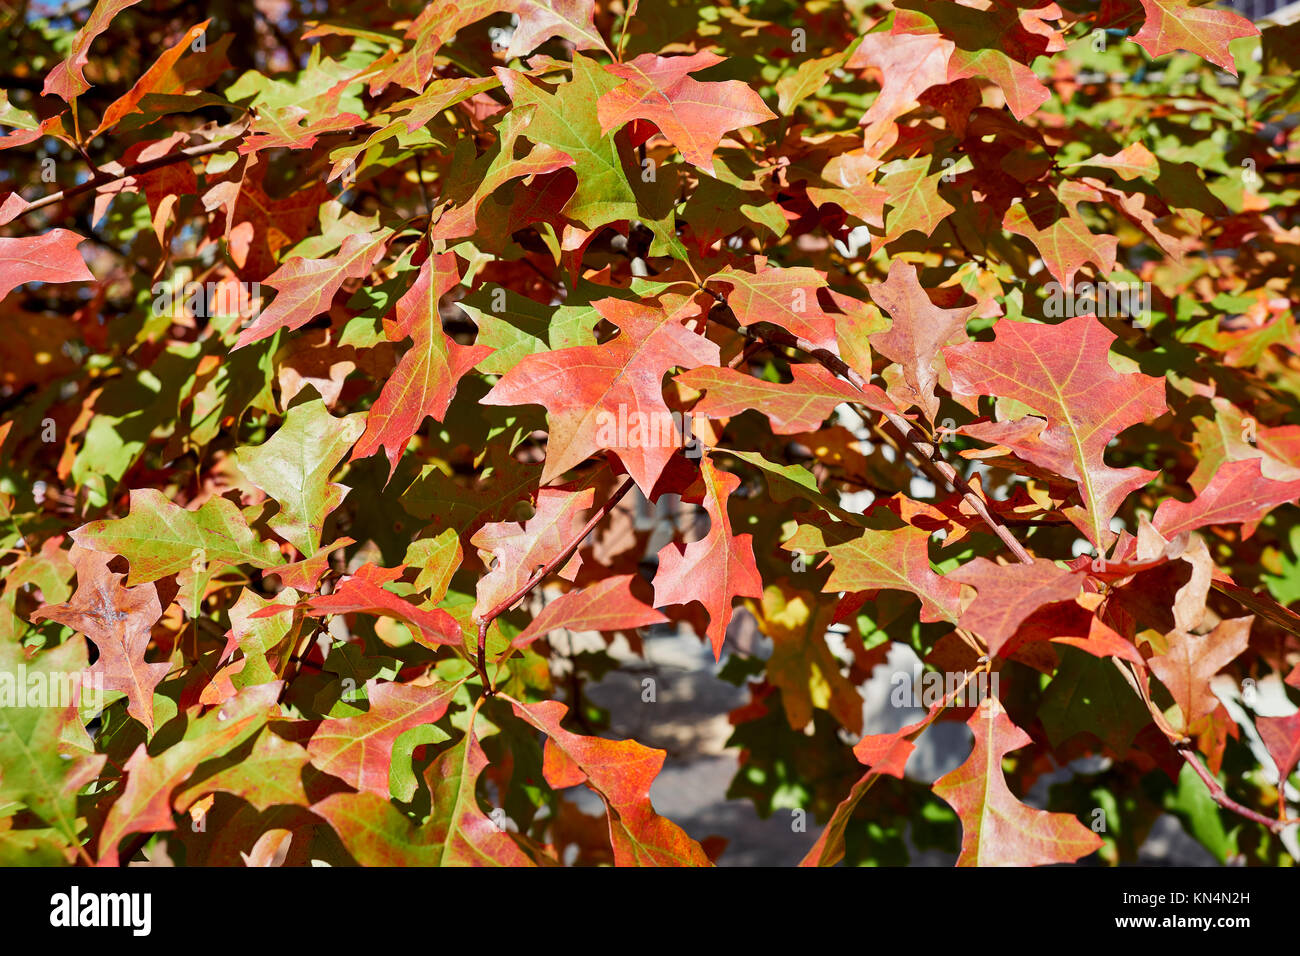 Quercus Rubra L, or Northern Red Oak, Eastern Red Oak leaves just turning during the Fall or Autumn season serving - Stock Image